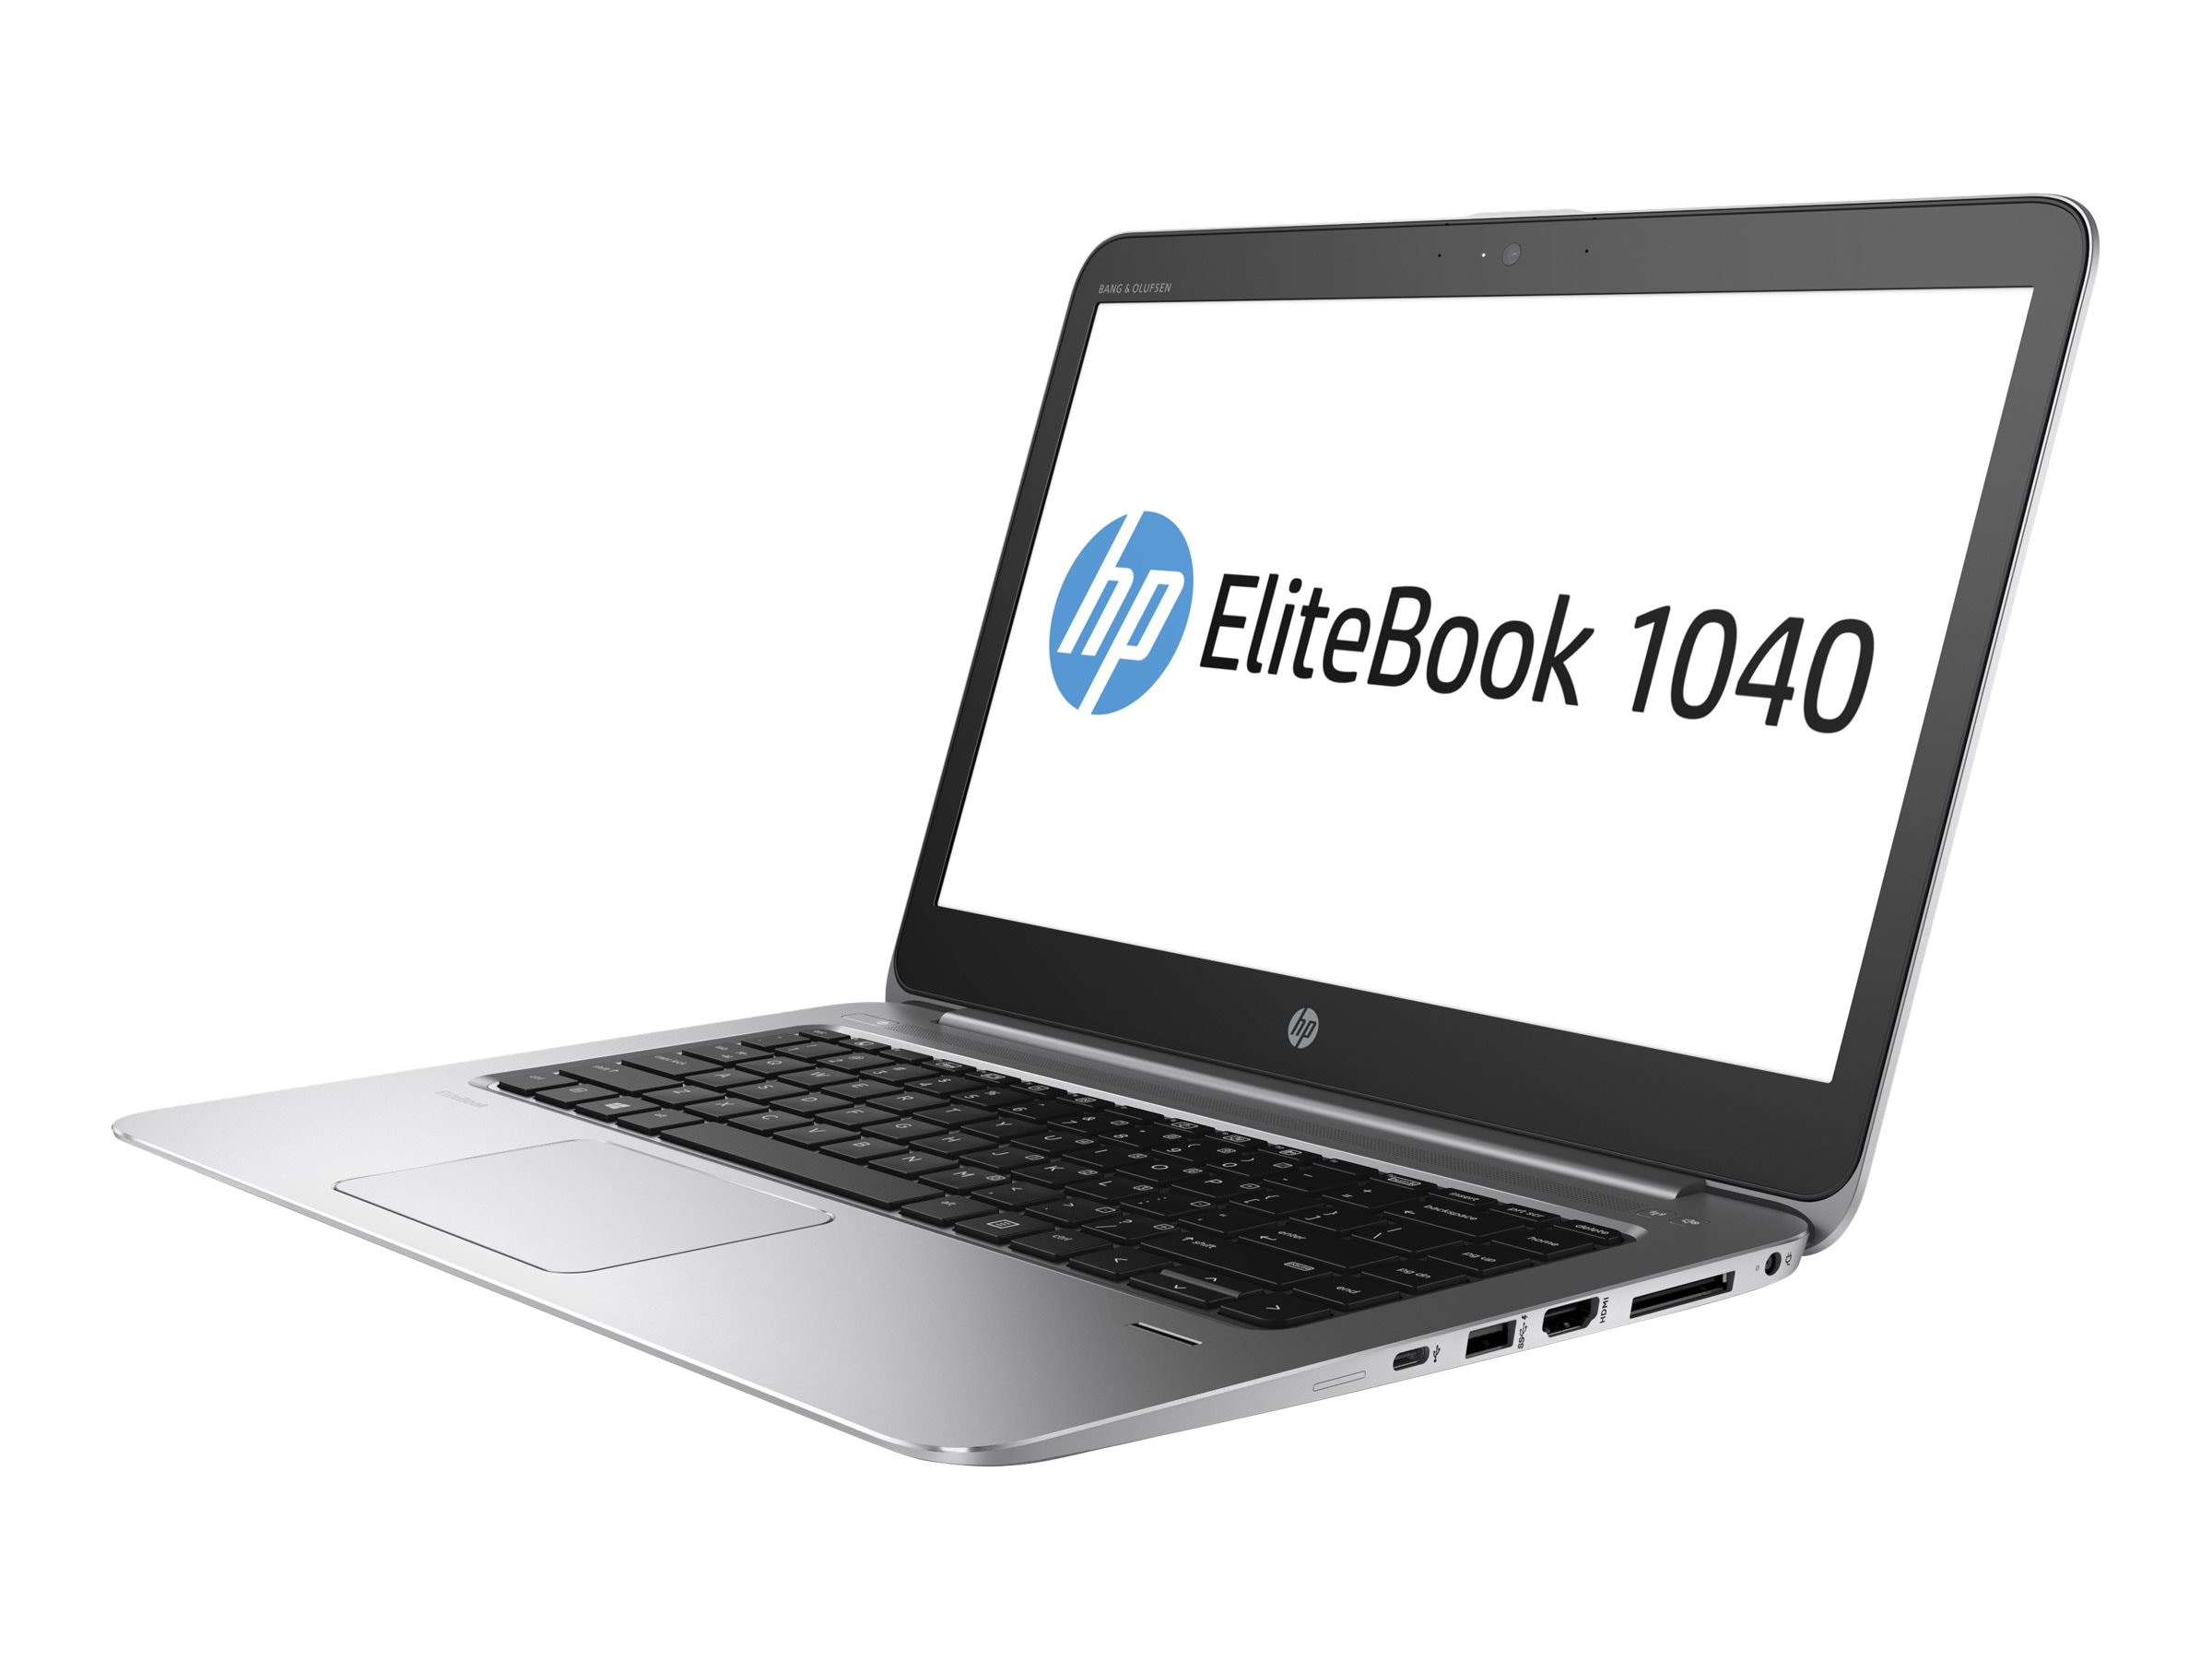 HP EliteBook 1040 G3 2.4GHz Core i5 14in display, V1P93UT#ABA, 31257167, Notebooks